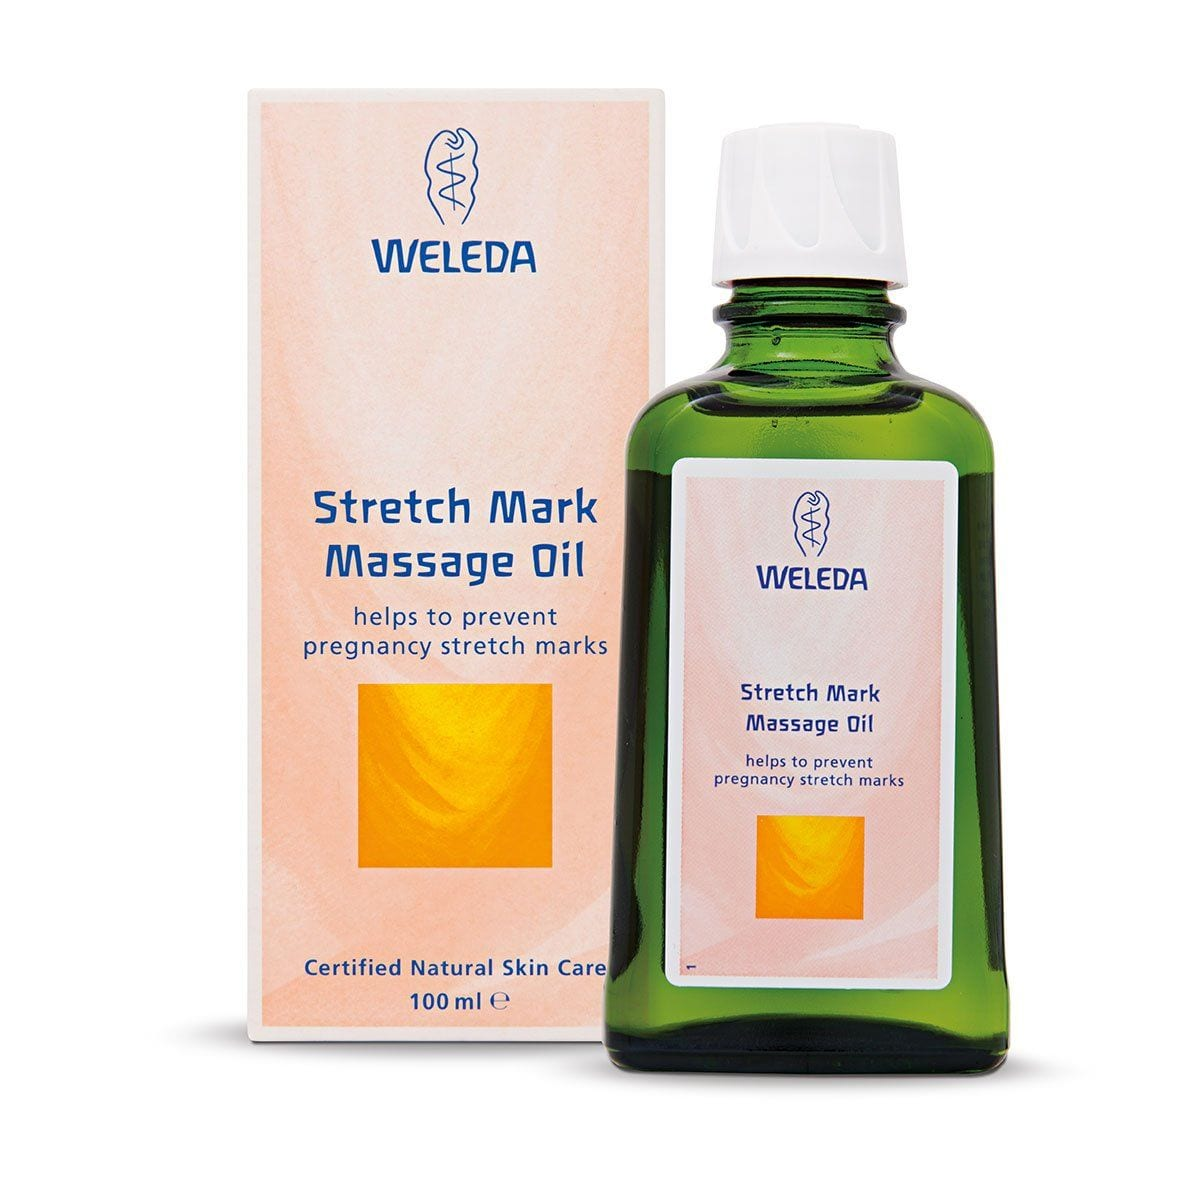 Weleda Stretch Mark Massage Oil - huggle